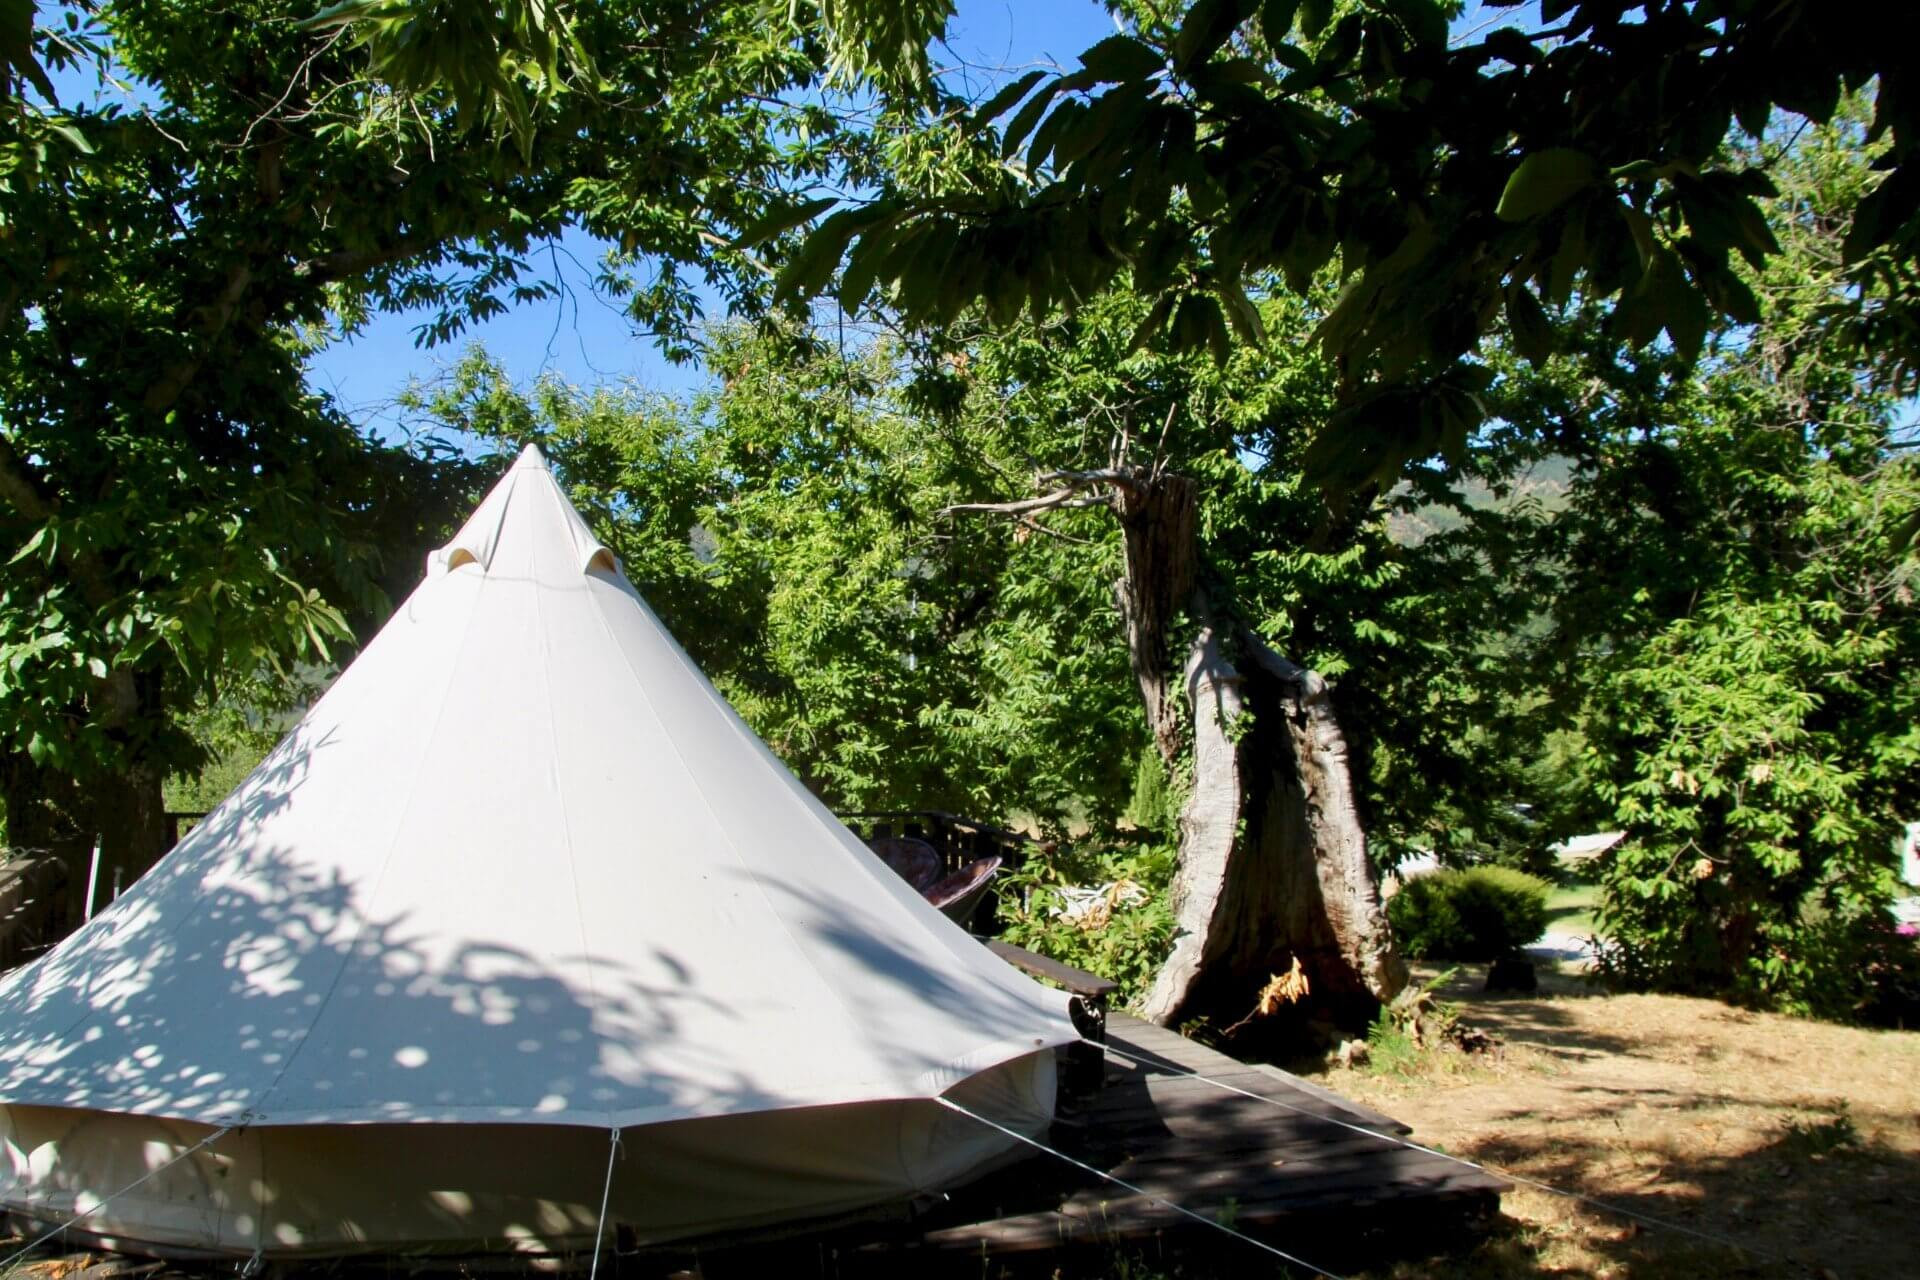 IMG 6838 PASSIONE GLAMPING